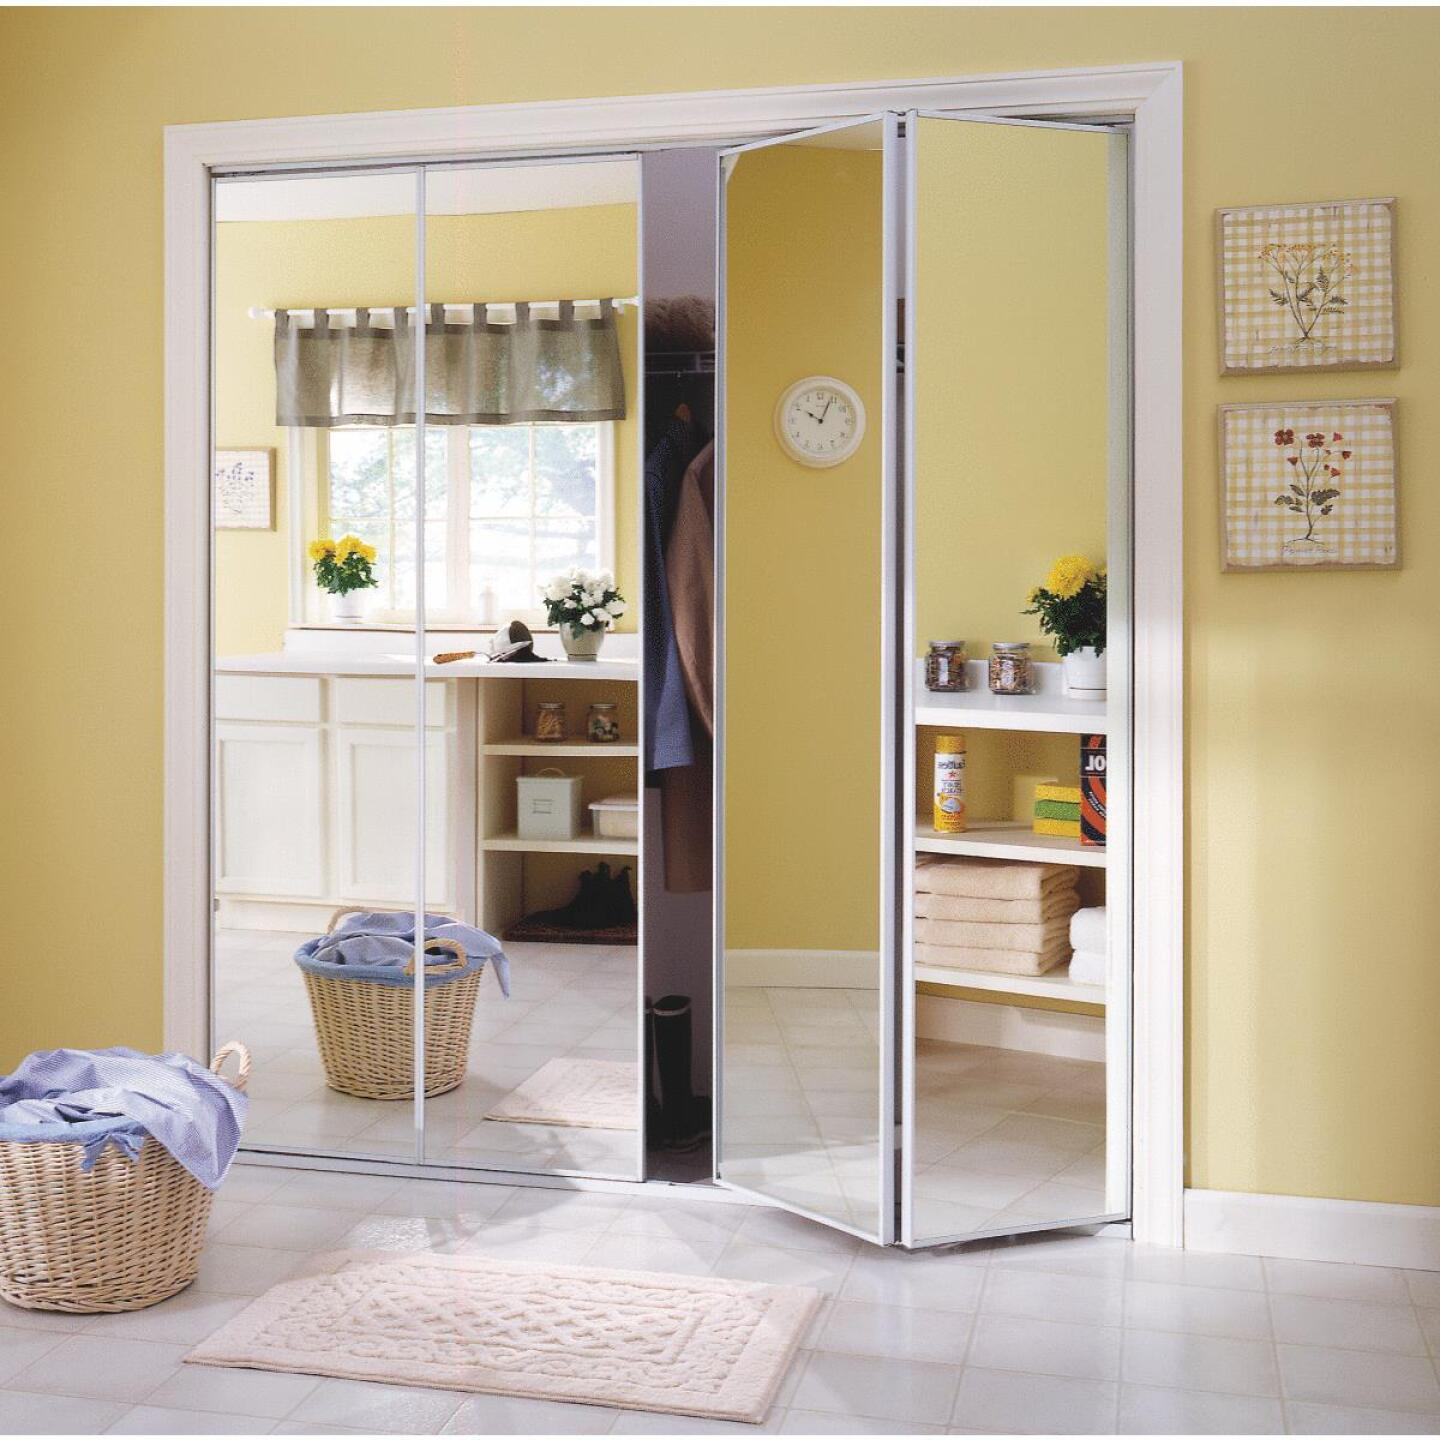 Erias Series 4400 30 In. W. x 80-1/2 In. H. Steel Frame Mirrored White Bifold Door Image 1